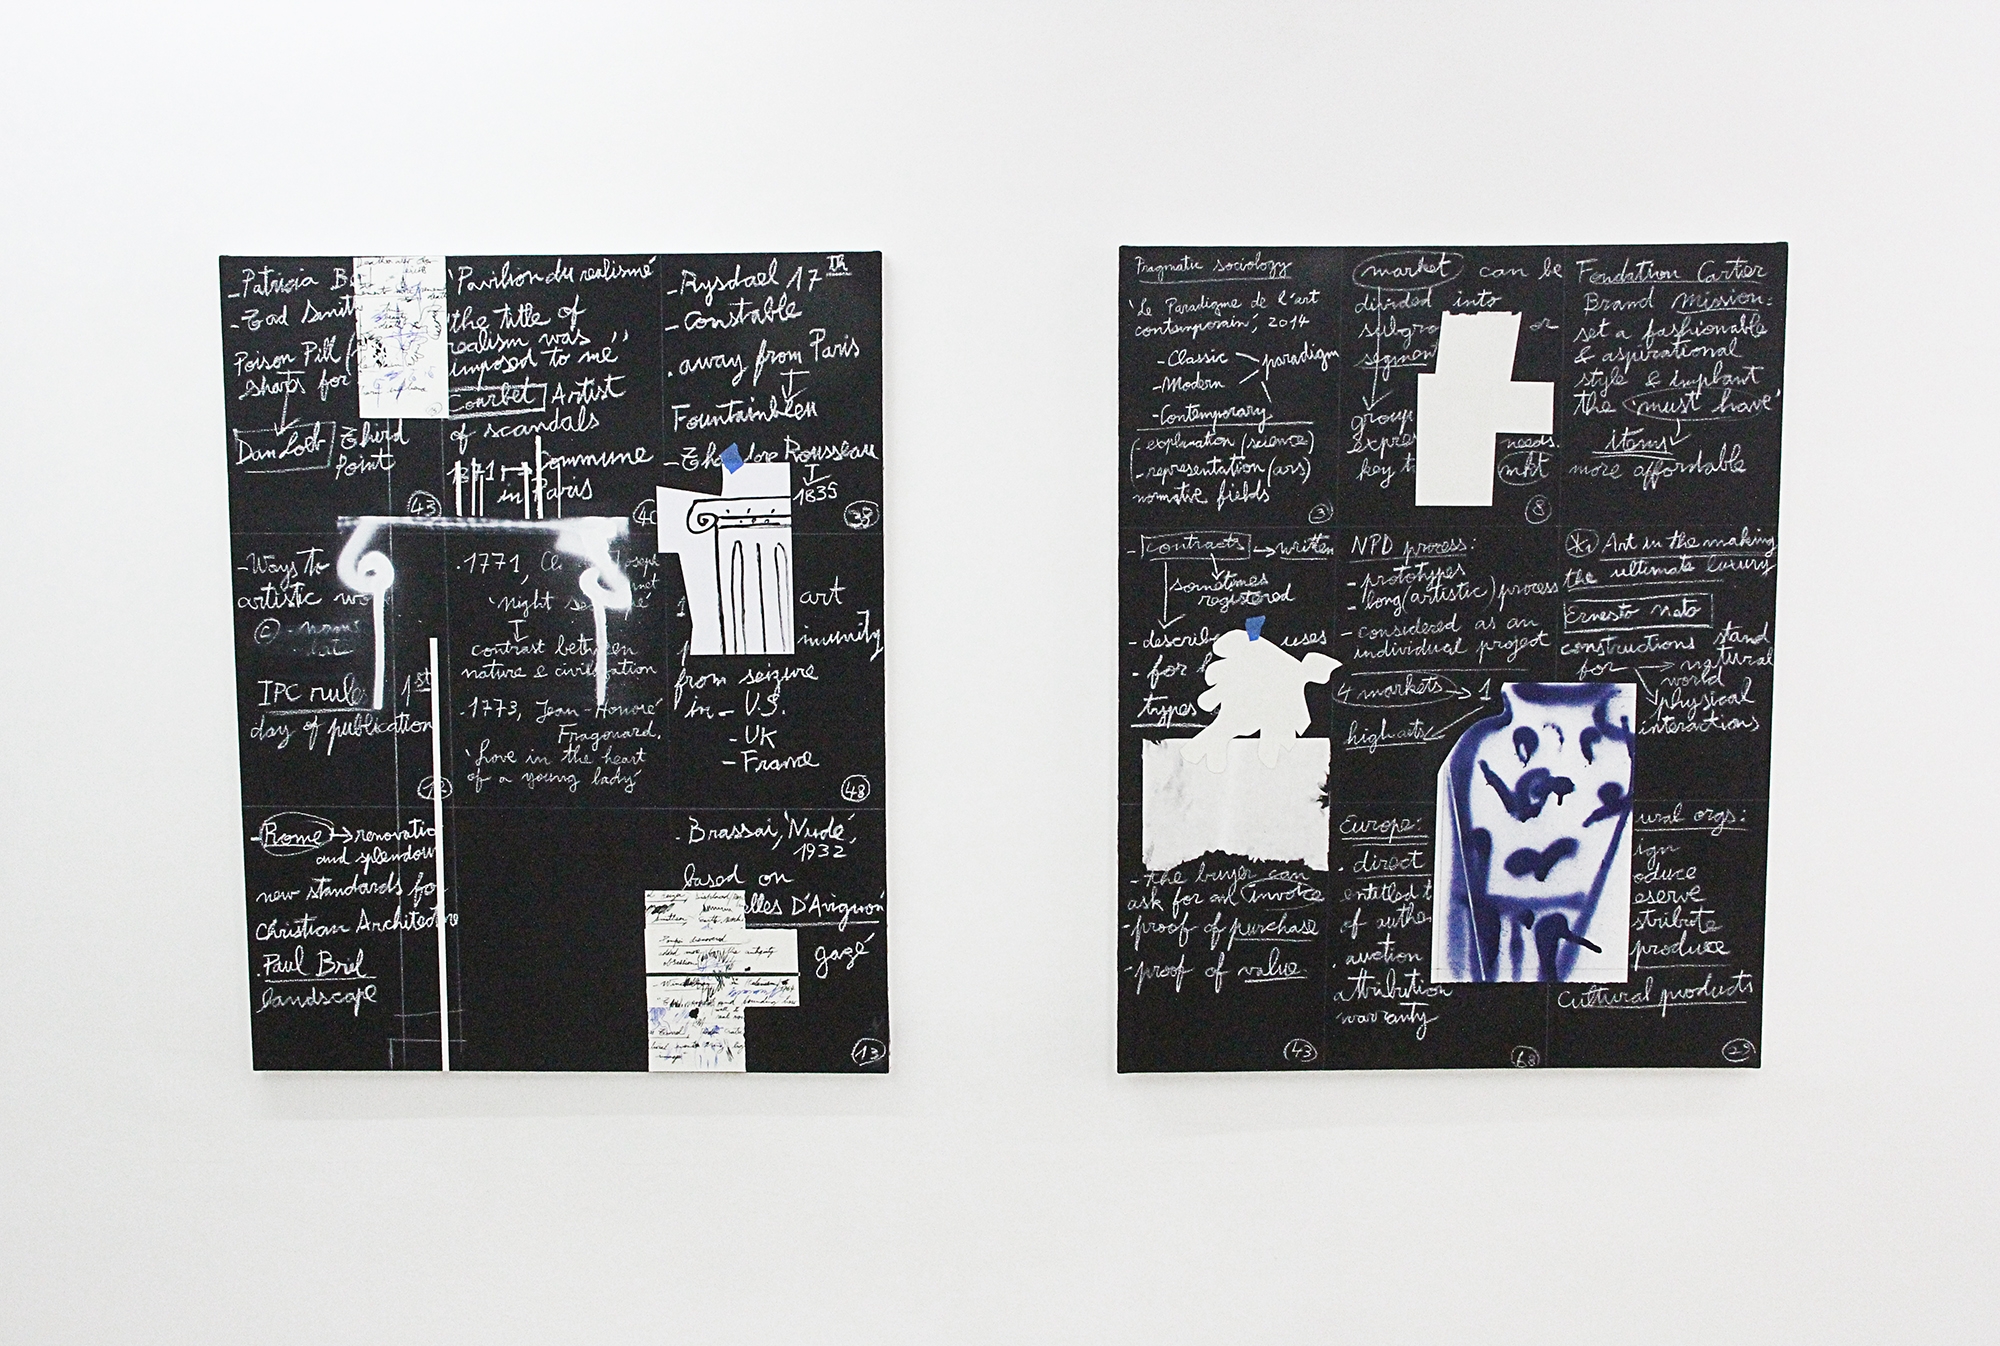 Alejandro M. Parisi, The precise order of things, solo show, 2018